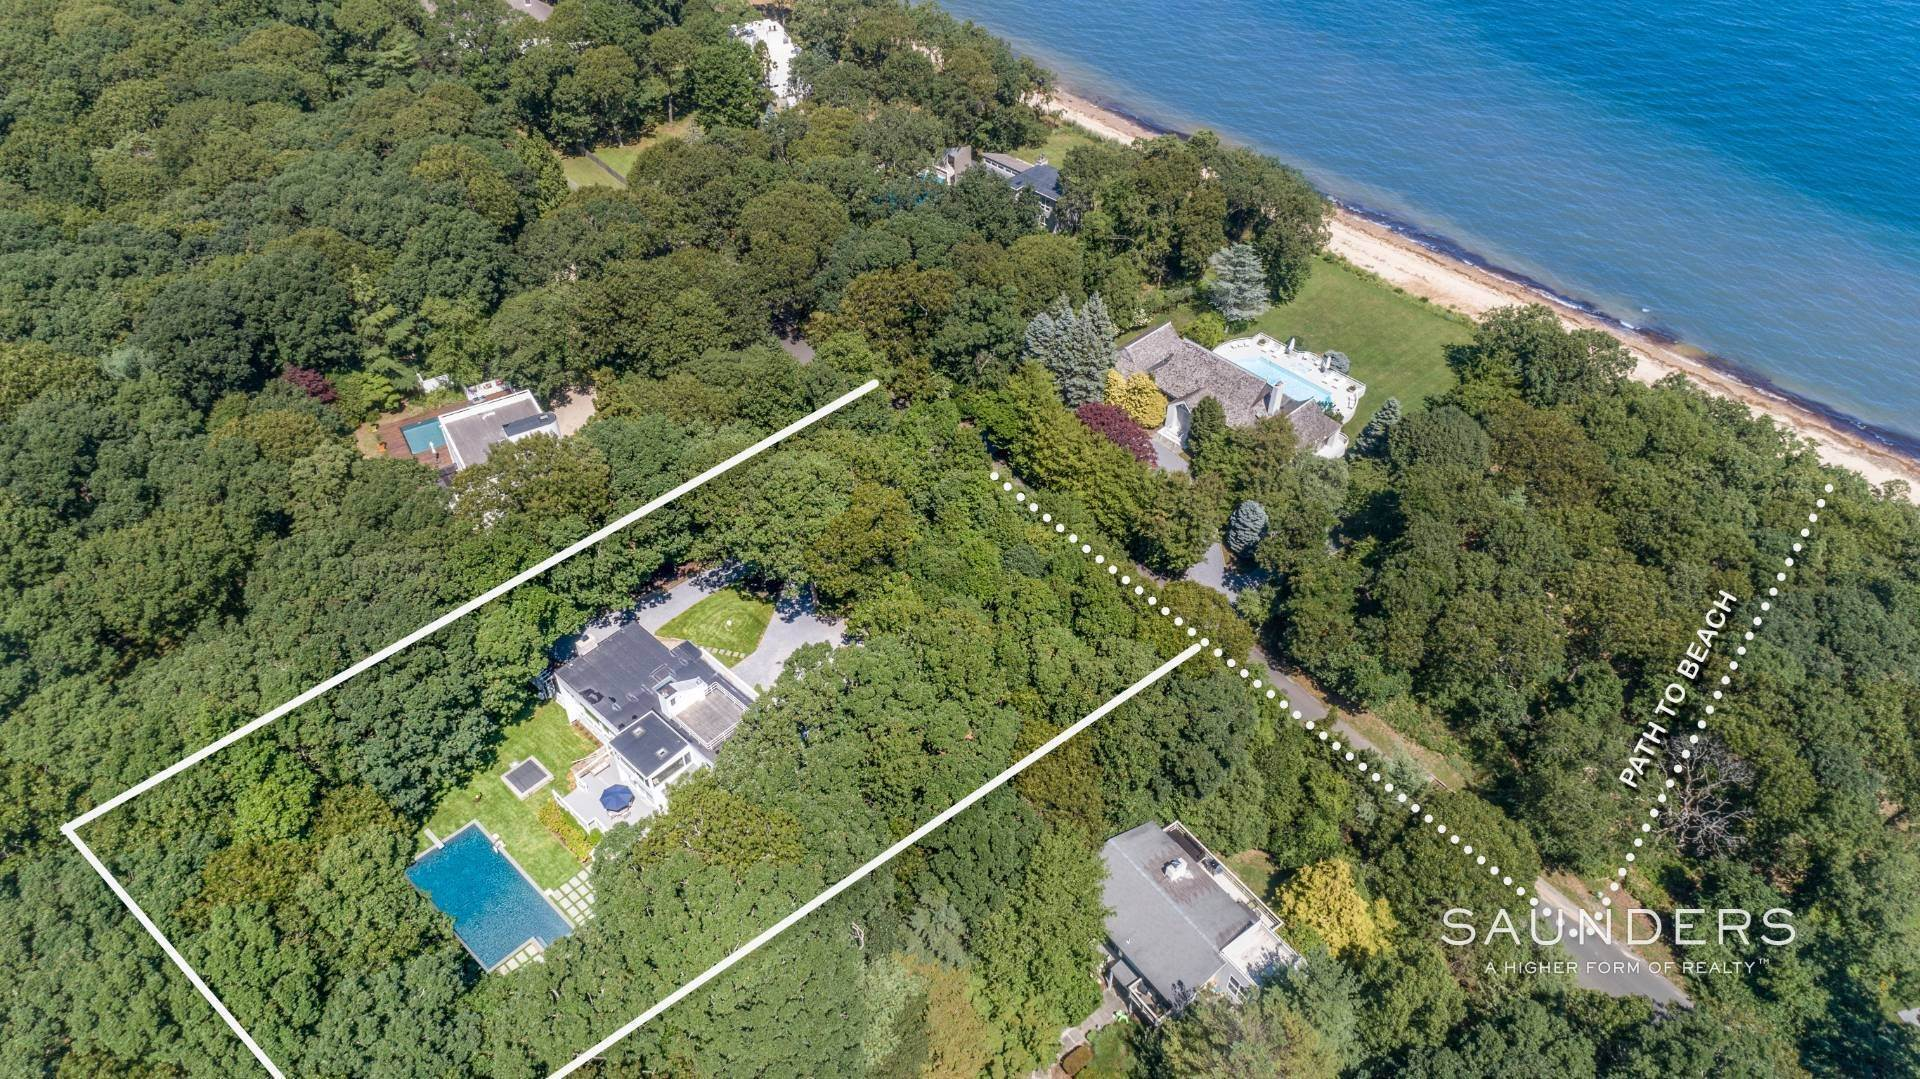 Single Family Homes for Sale at Spectacular In A Private Beach Community 29 Hedges Banks Drive, East Hampton, East Hampton Town, NY 11937